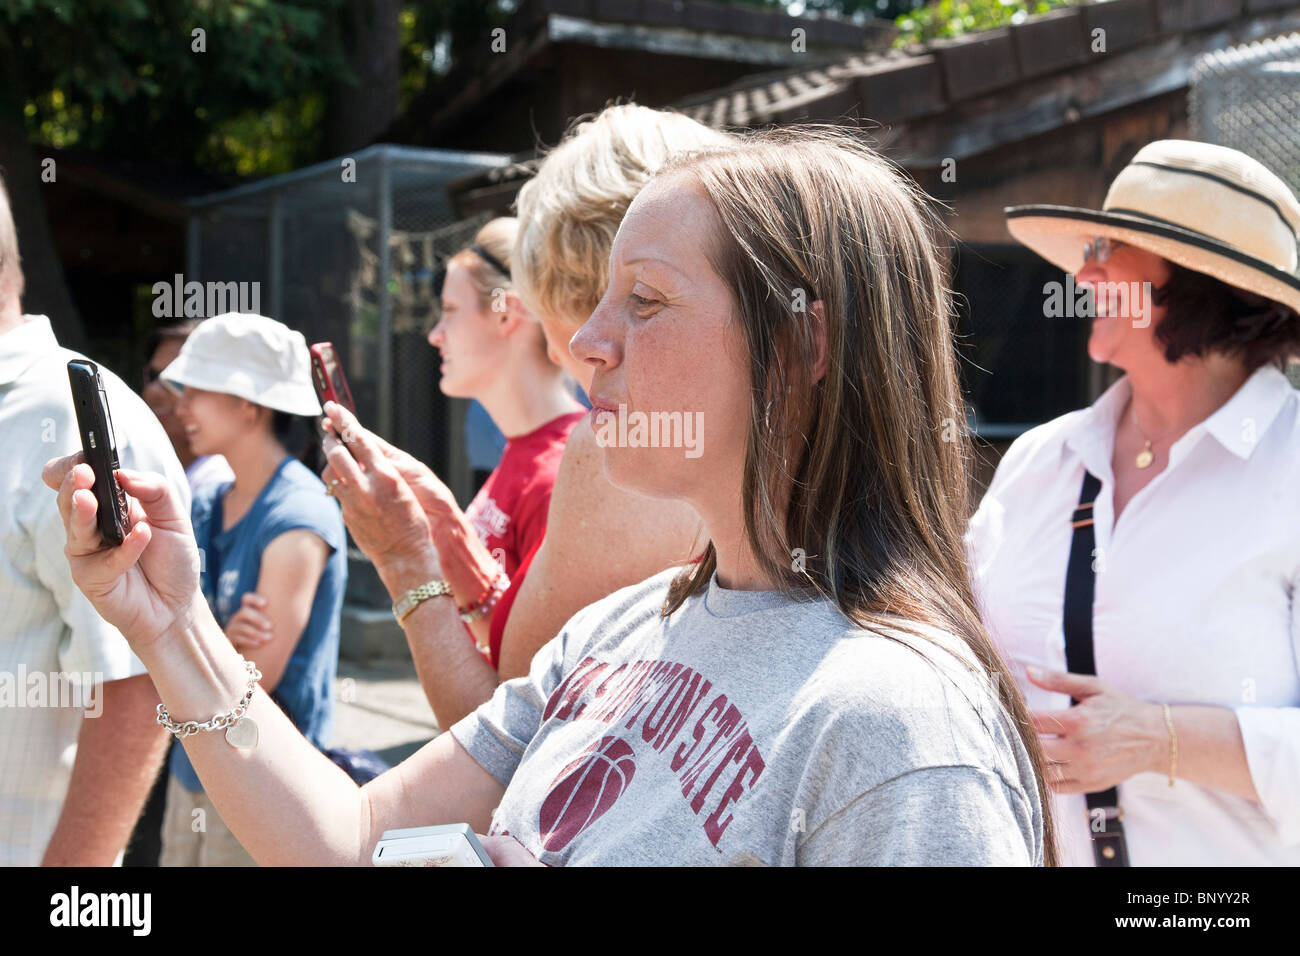 spectators smile with delight as they capture performance of parrot with keeper at Couger Mountain Zoological Park - Stock Image